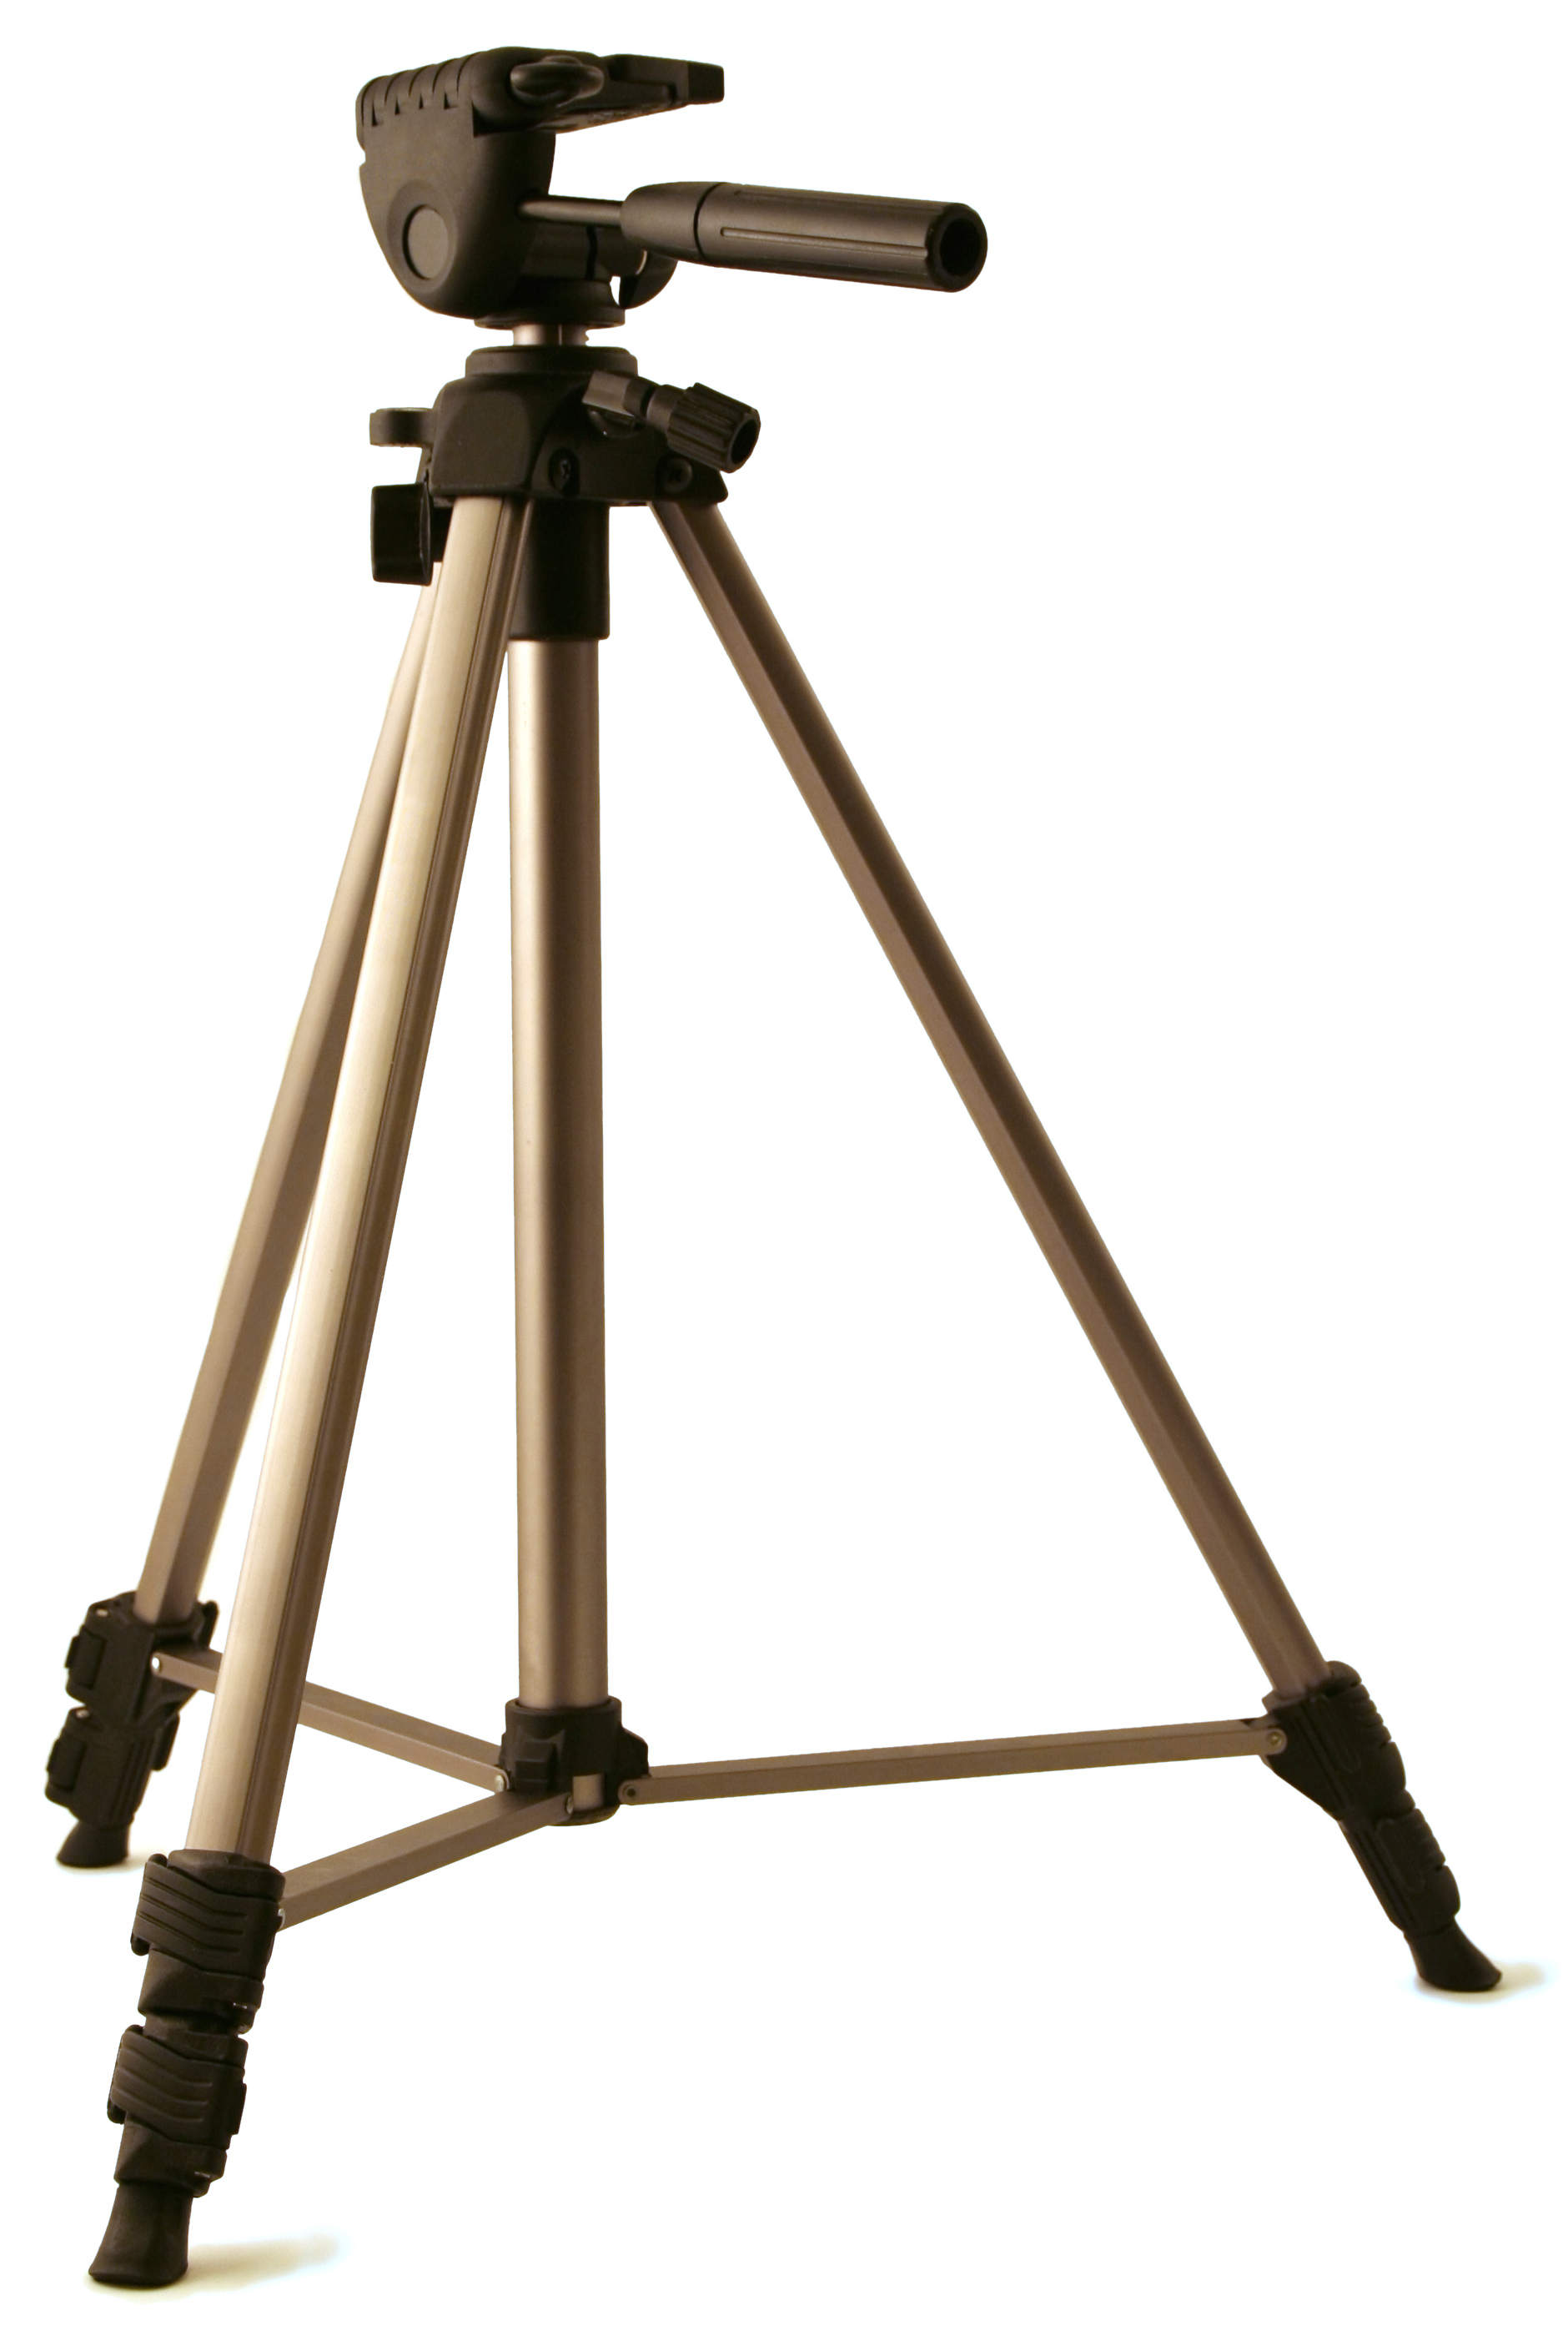 h2-take-great-jewelry-pics-tripod.jpg